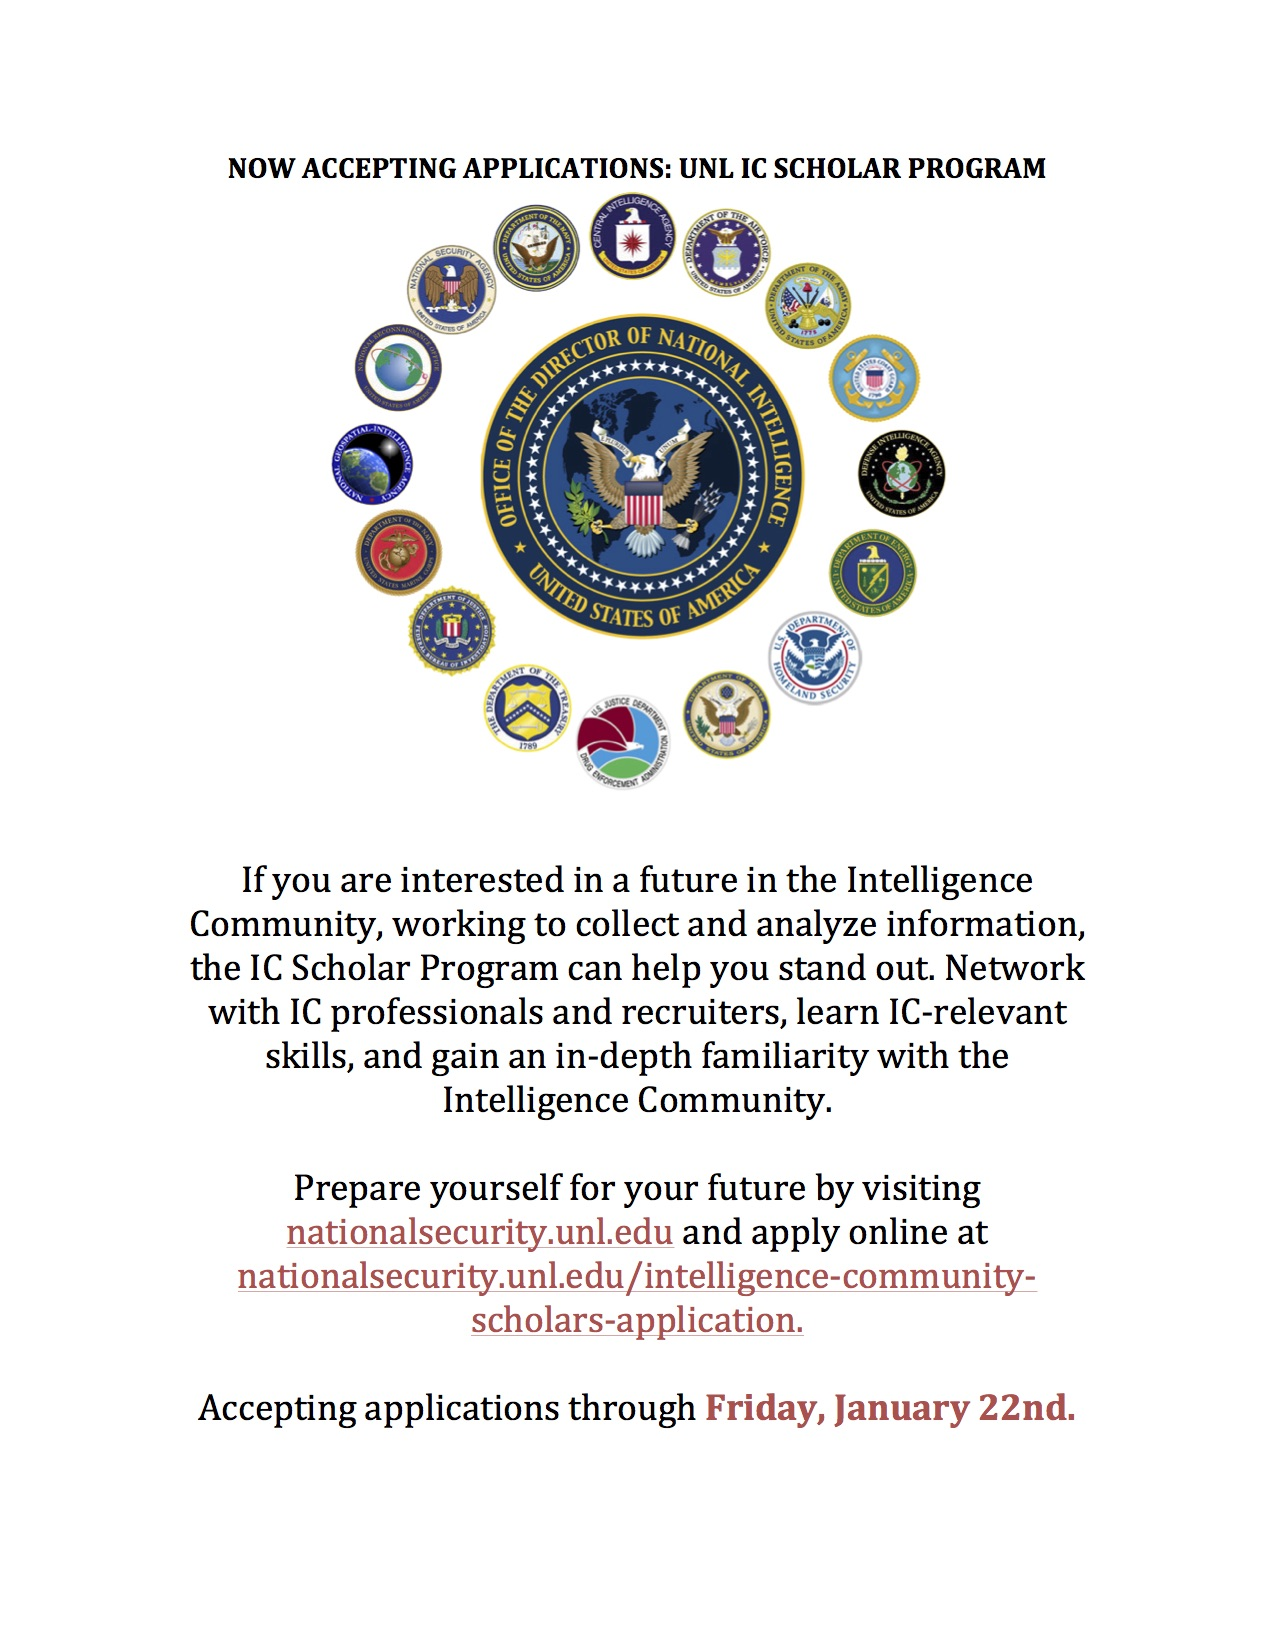 Student Programs Search for Intelligence Careers